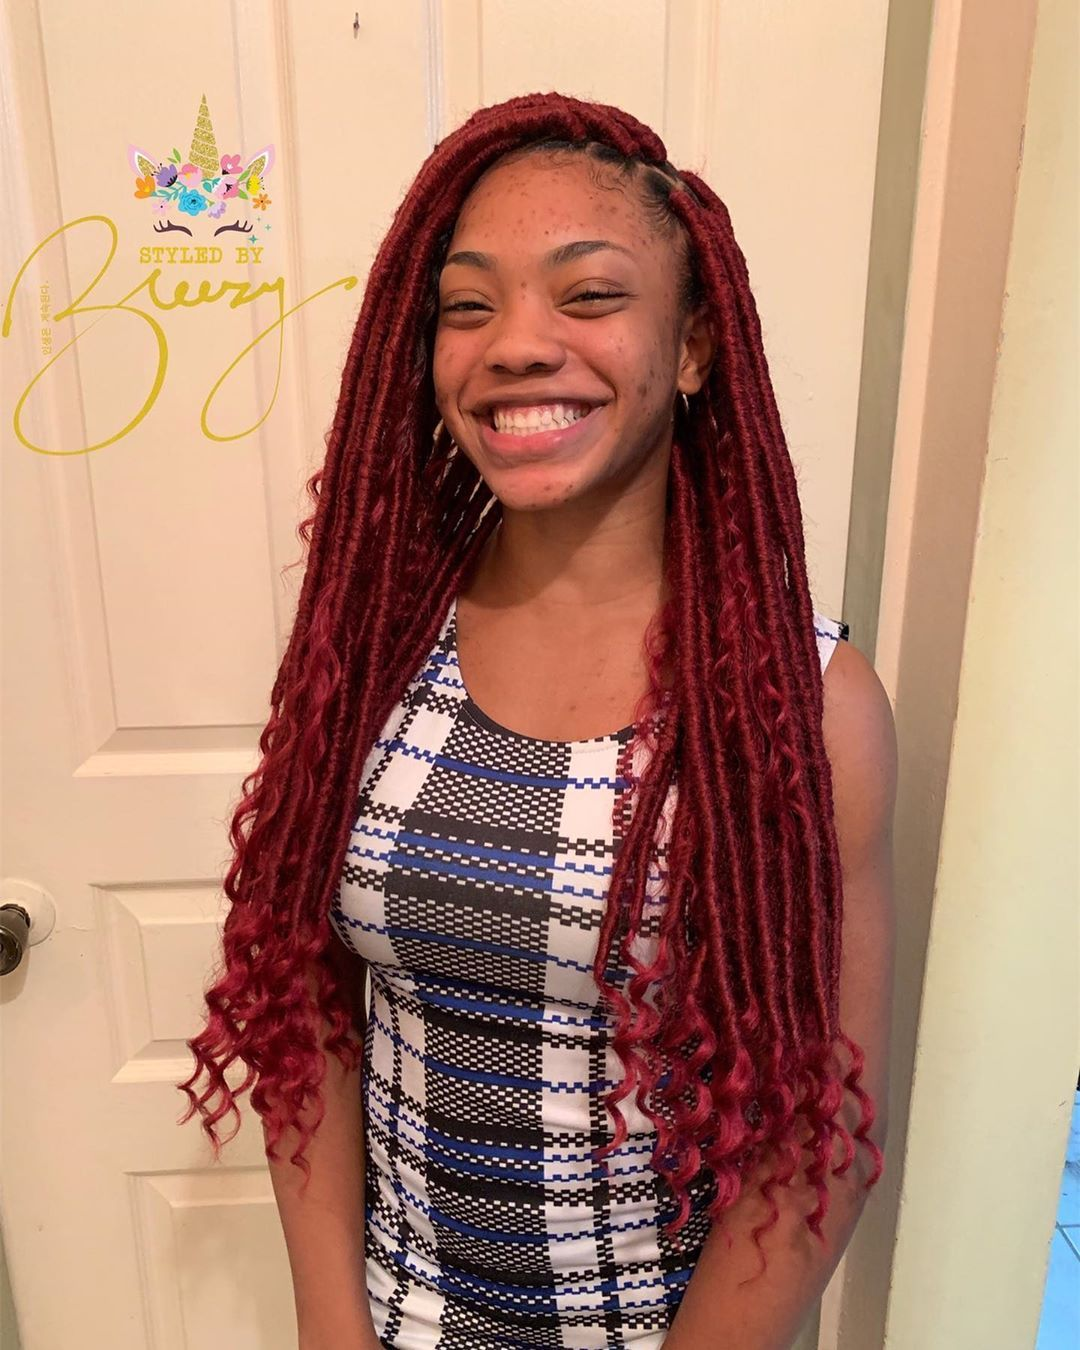 Breezy On Instagram Lol That S Her Real Smile She S A Cutie Pie Fauxlocs Goddesslocs Braid Br In 2020 Goddess Locs Natural Hair Styles Cutie